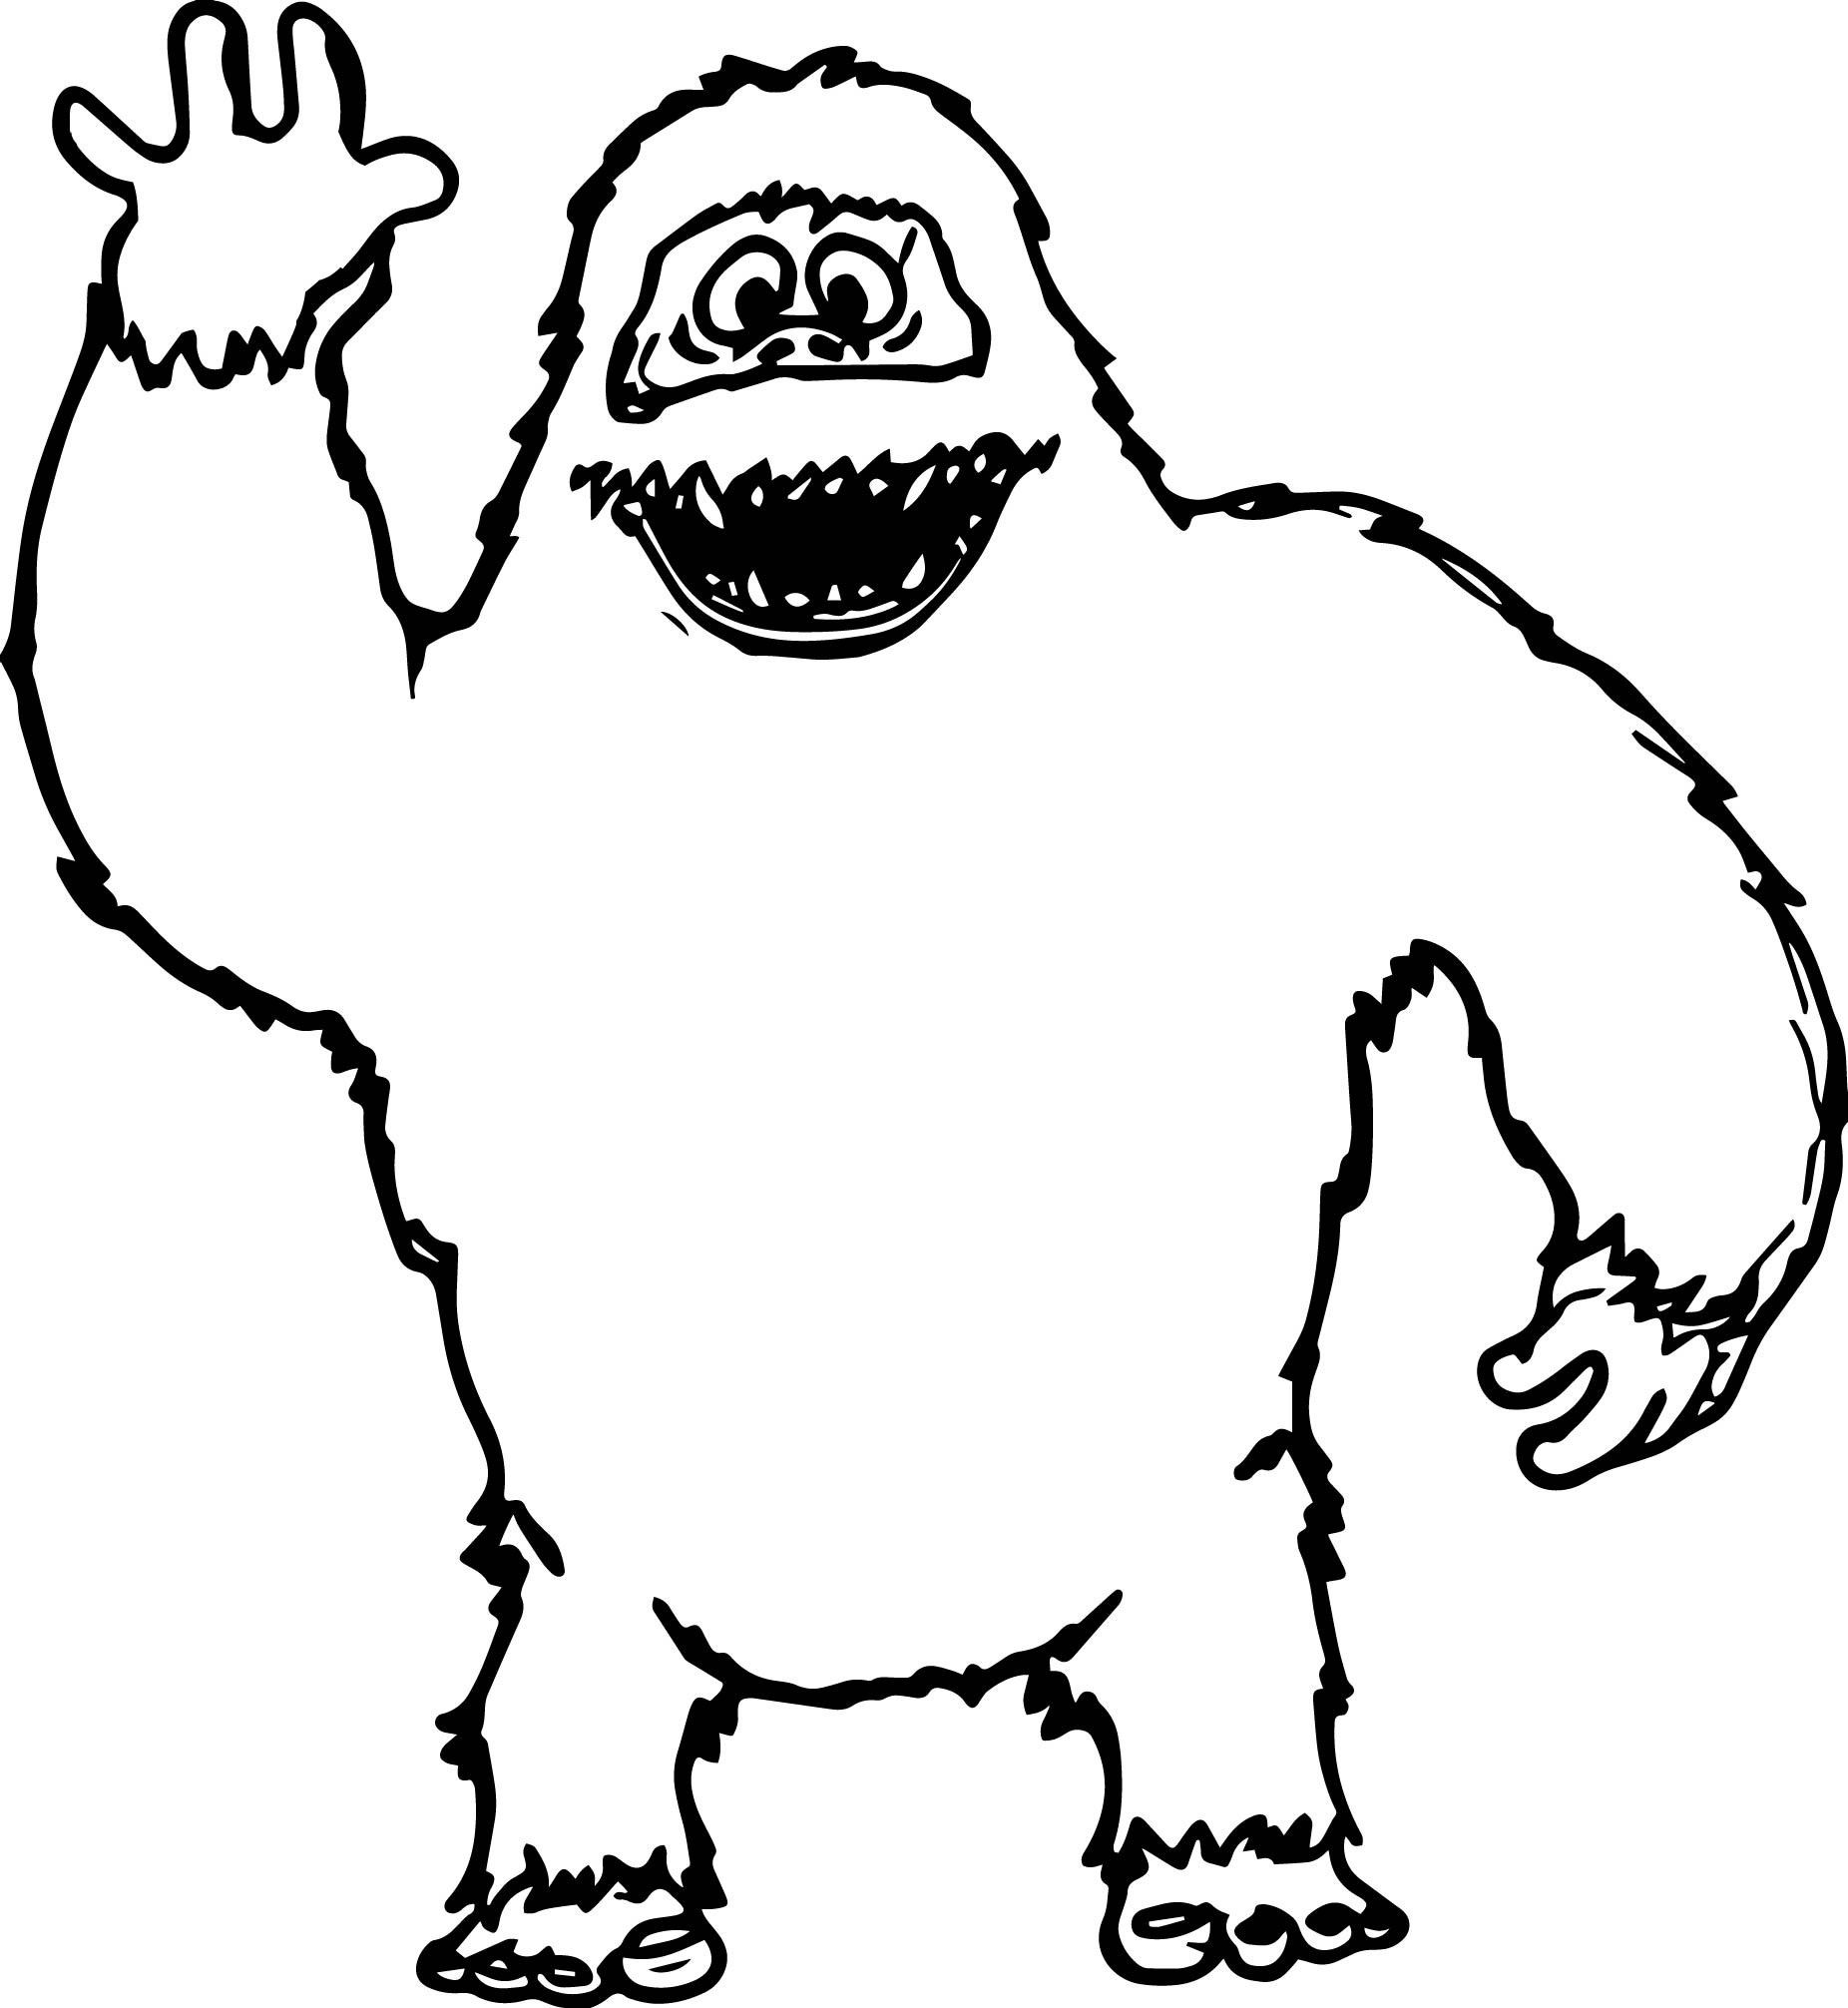 Bumble Rudolph Coloring Pages Rudolph Coloring Pages Snowman Coloring Pages Coloring Pages